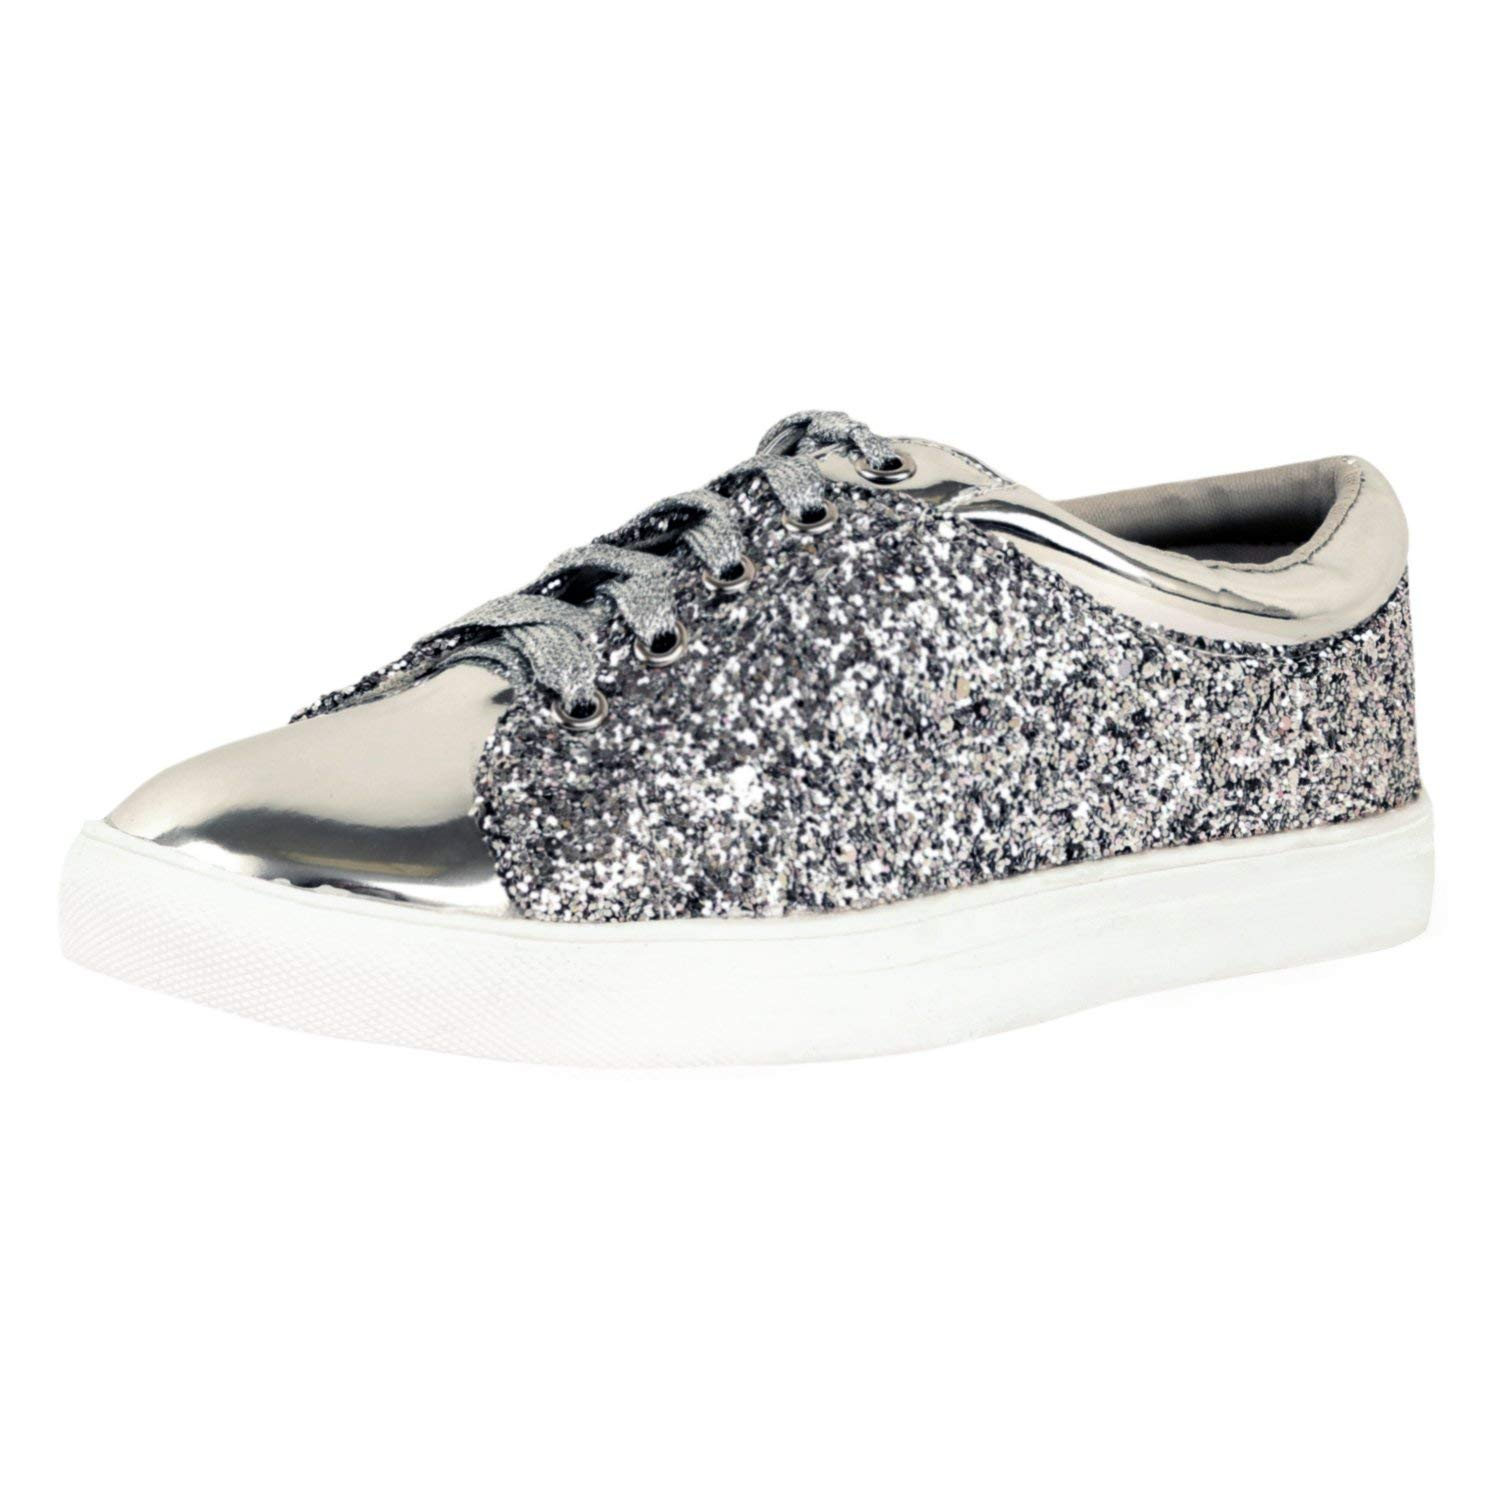 c3ab7d7ae1ea Get Quotations · Guilty Shoes - Womens Fashion Glitter Metallic Lace up  Sparkle Slip On - Wedge Platform Sneaker